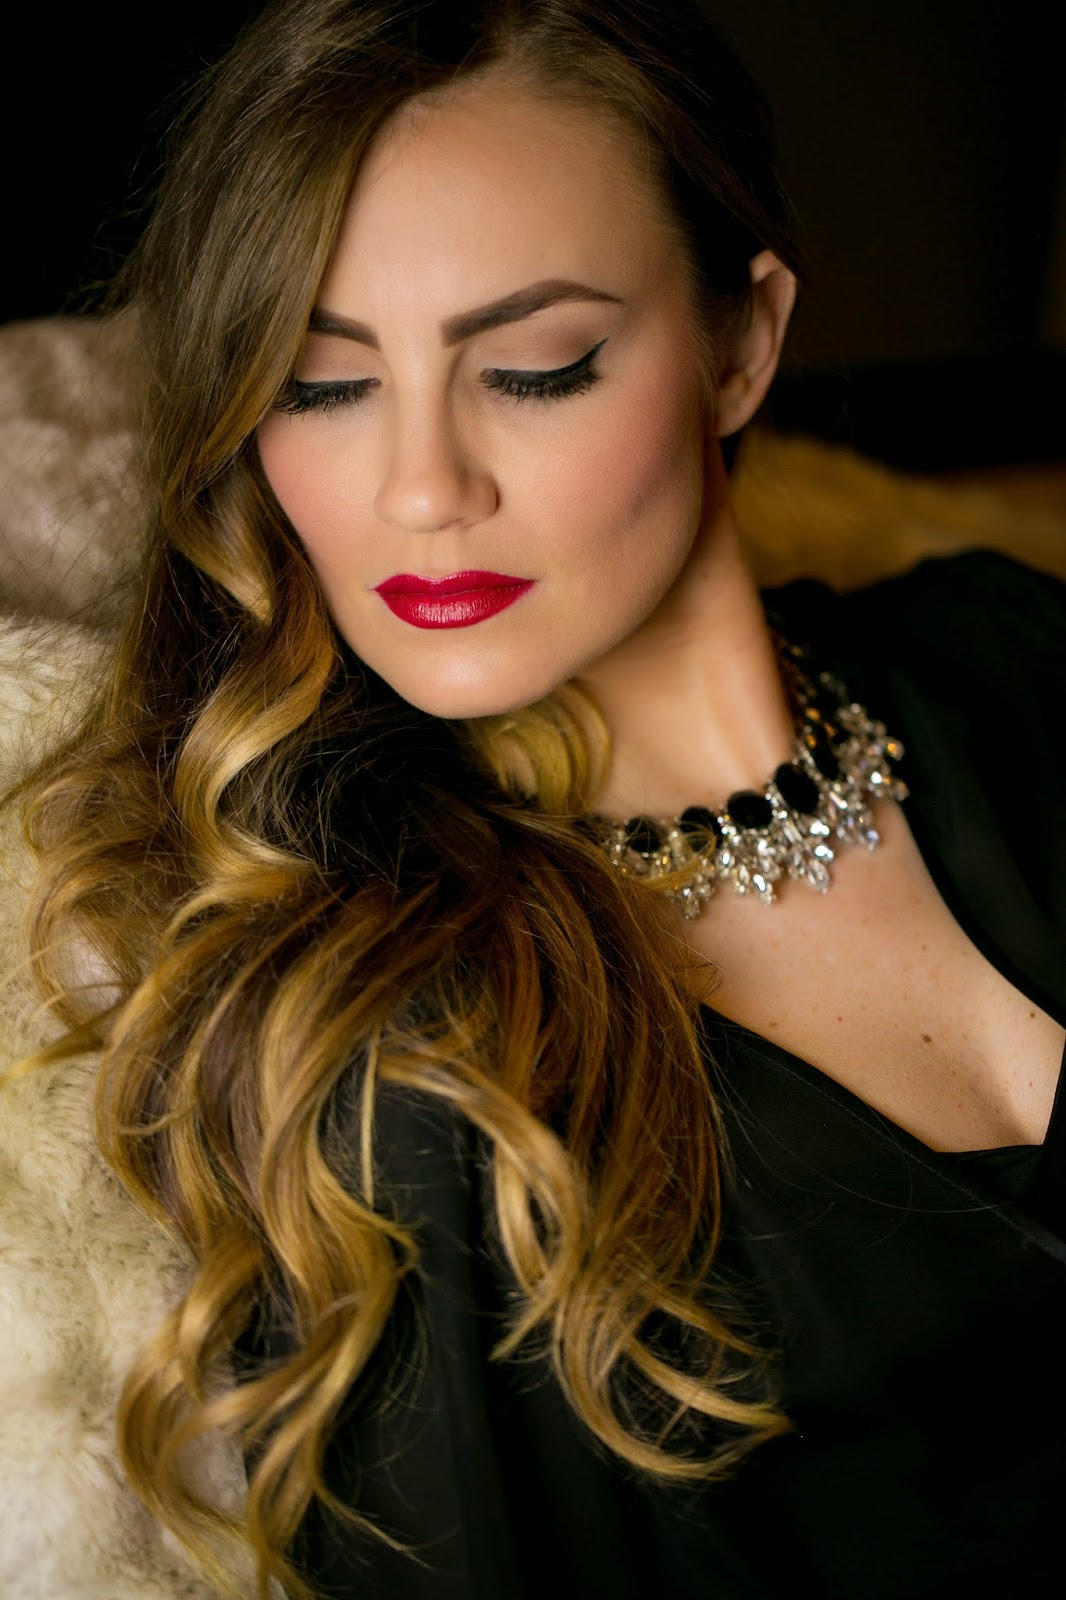 VIDEO: Old Hollywood Glam : Makeup u0026 Hair Tutorial - Hello Gorgeous by ...